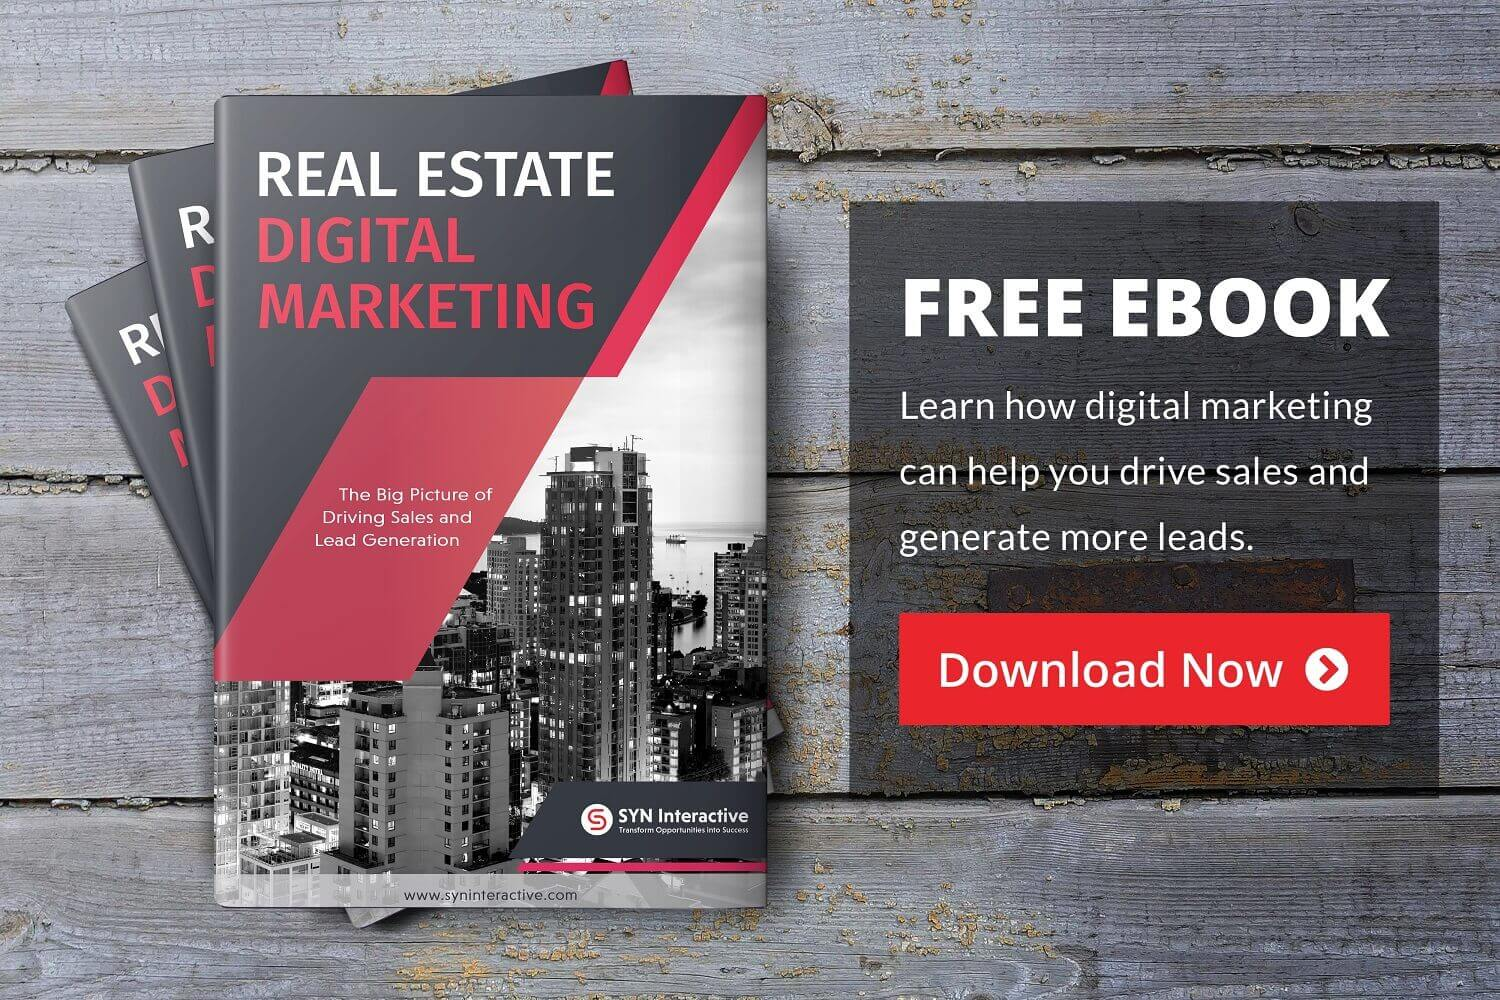 Real Estate Digital Marketing Ebook